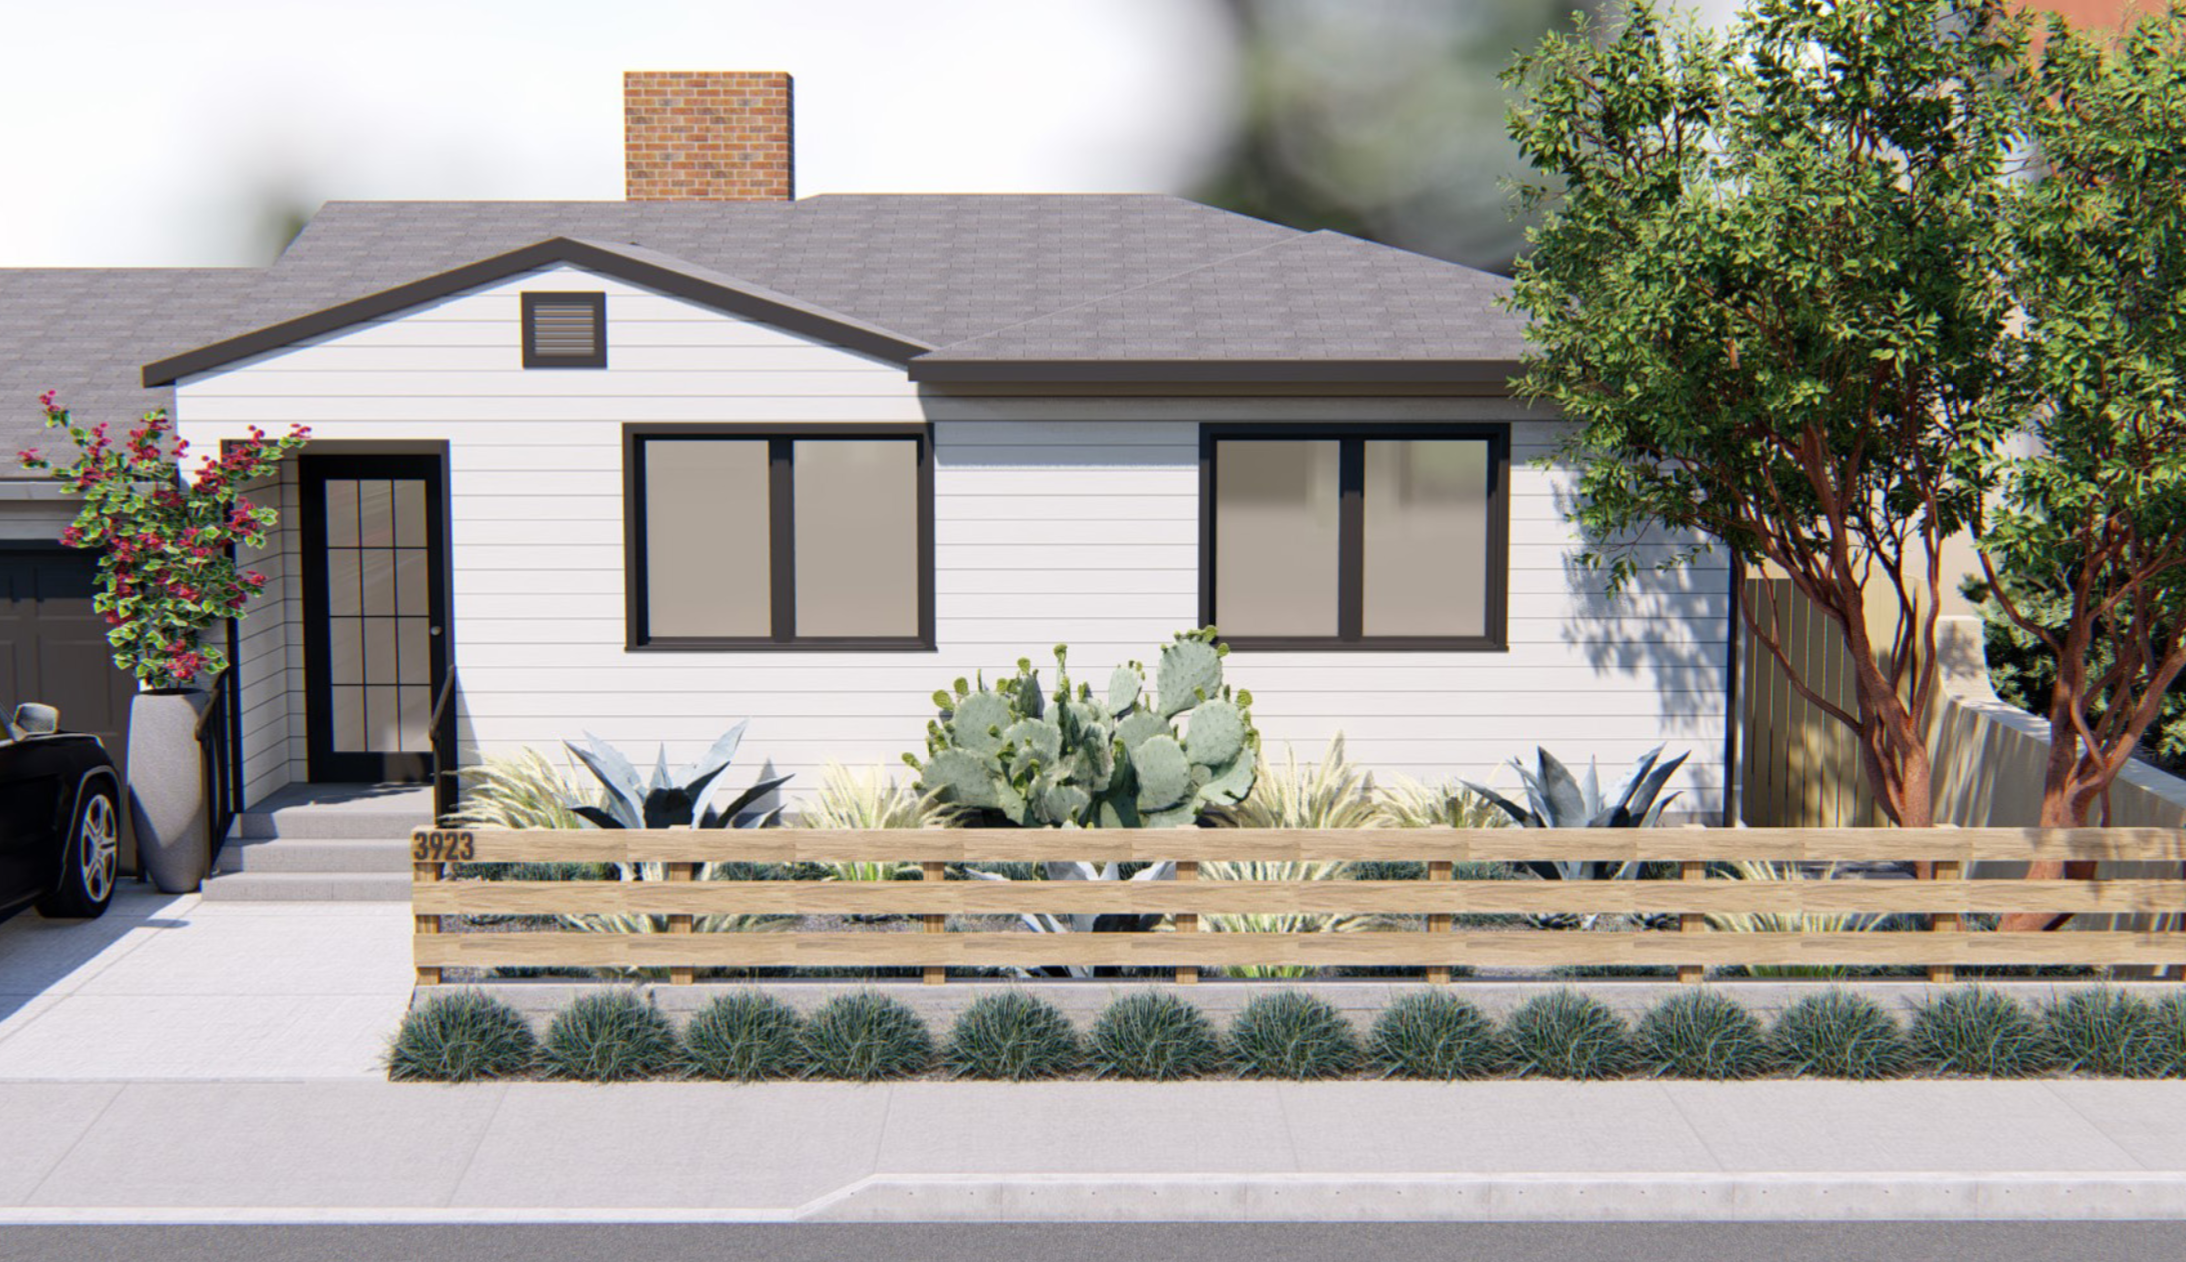 The front yard of the home features the same poured-in-place concrete pavers and beach pebbles that are used in the backyard, and the plantings also coordinate. The fence will be extended with a gate across the driveway.